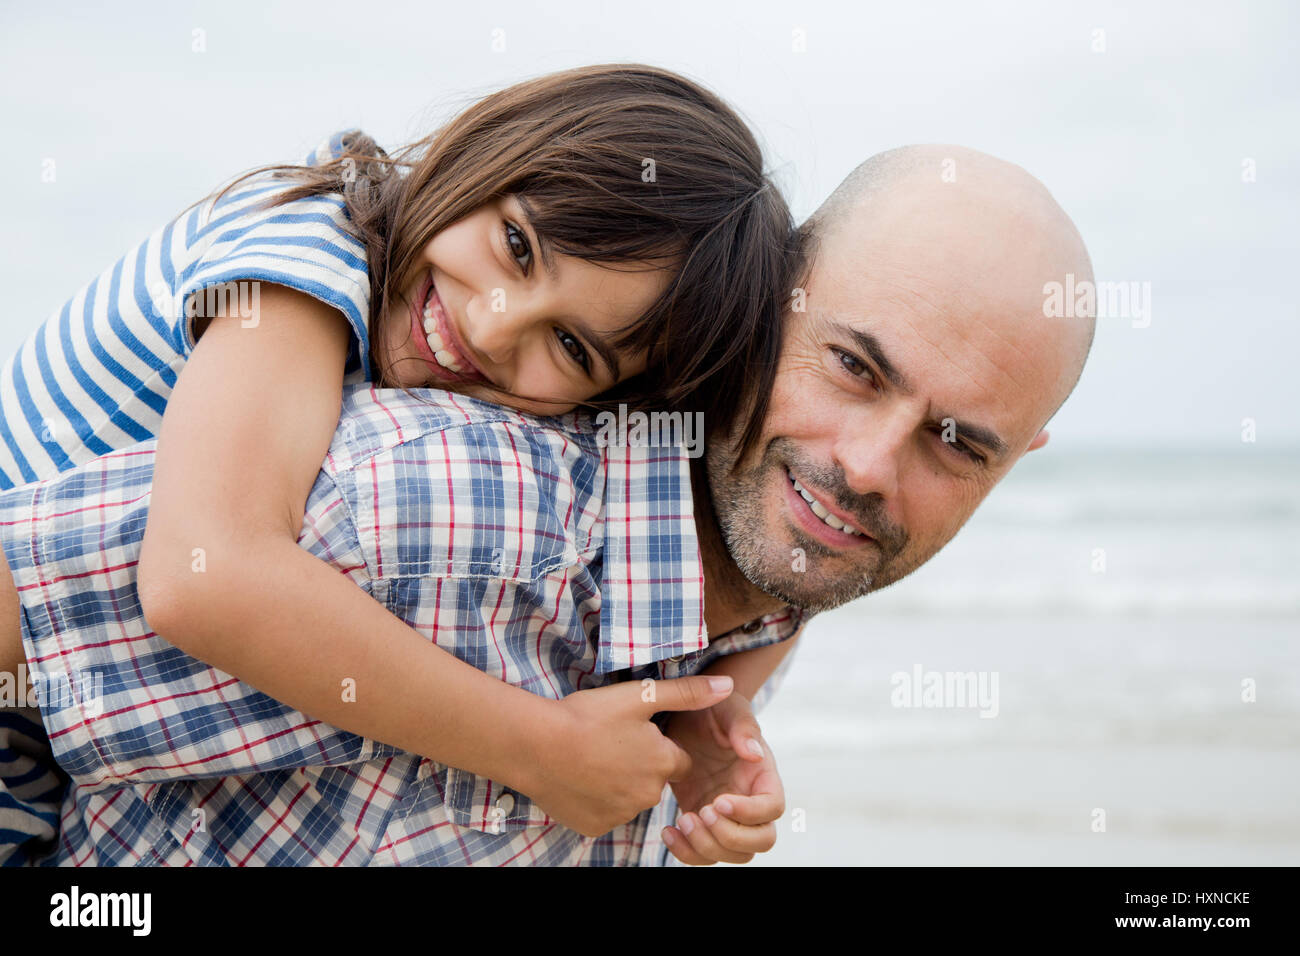 Father giving his daughter a piggy back ride on the beach in a cloudy day - Stock Image